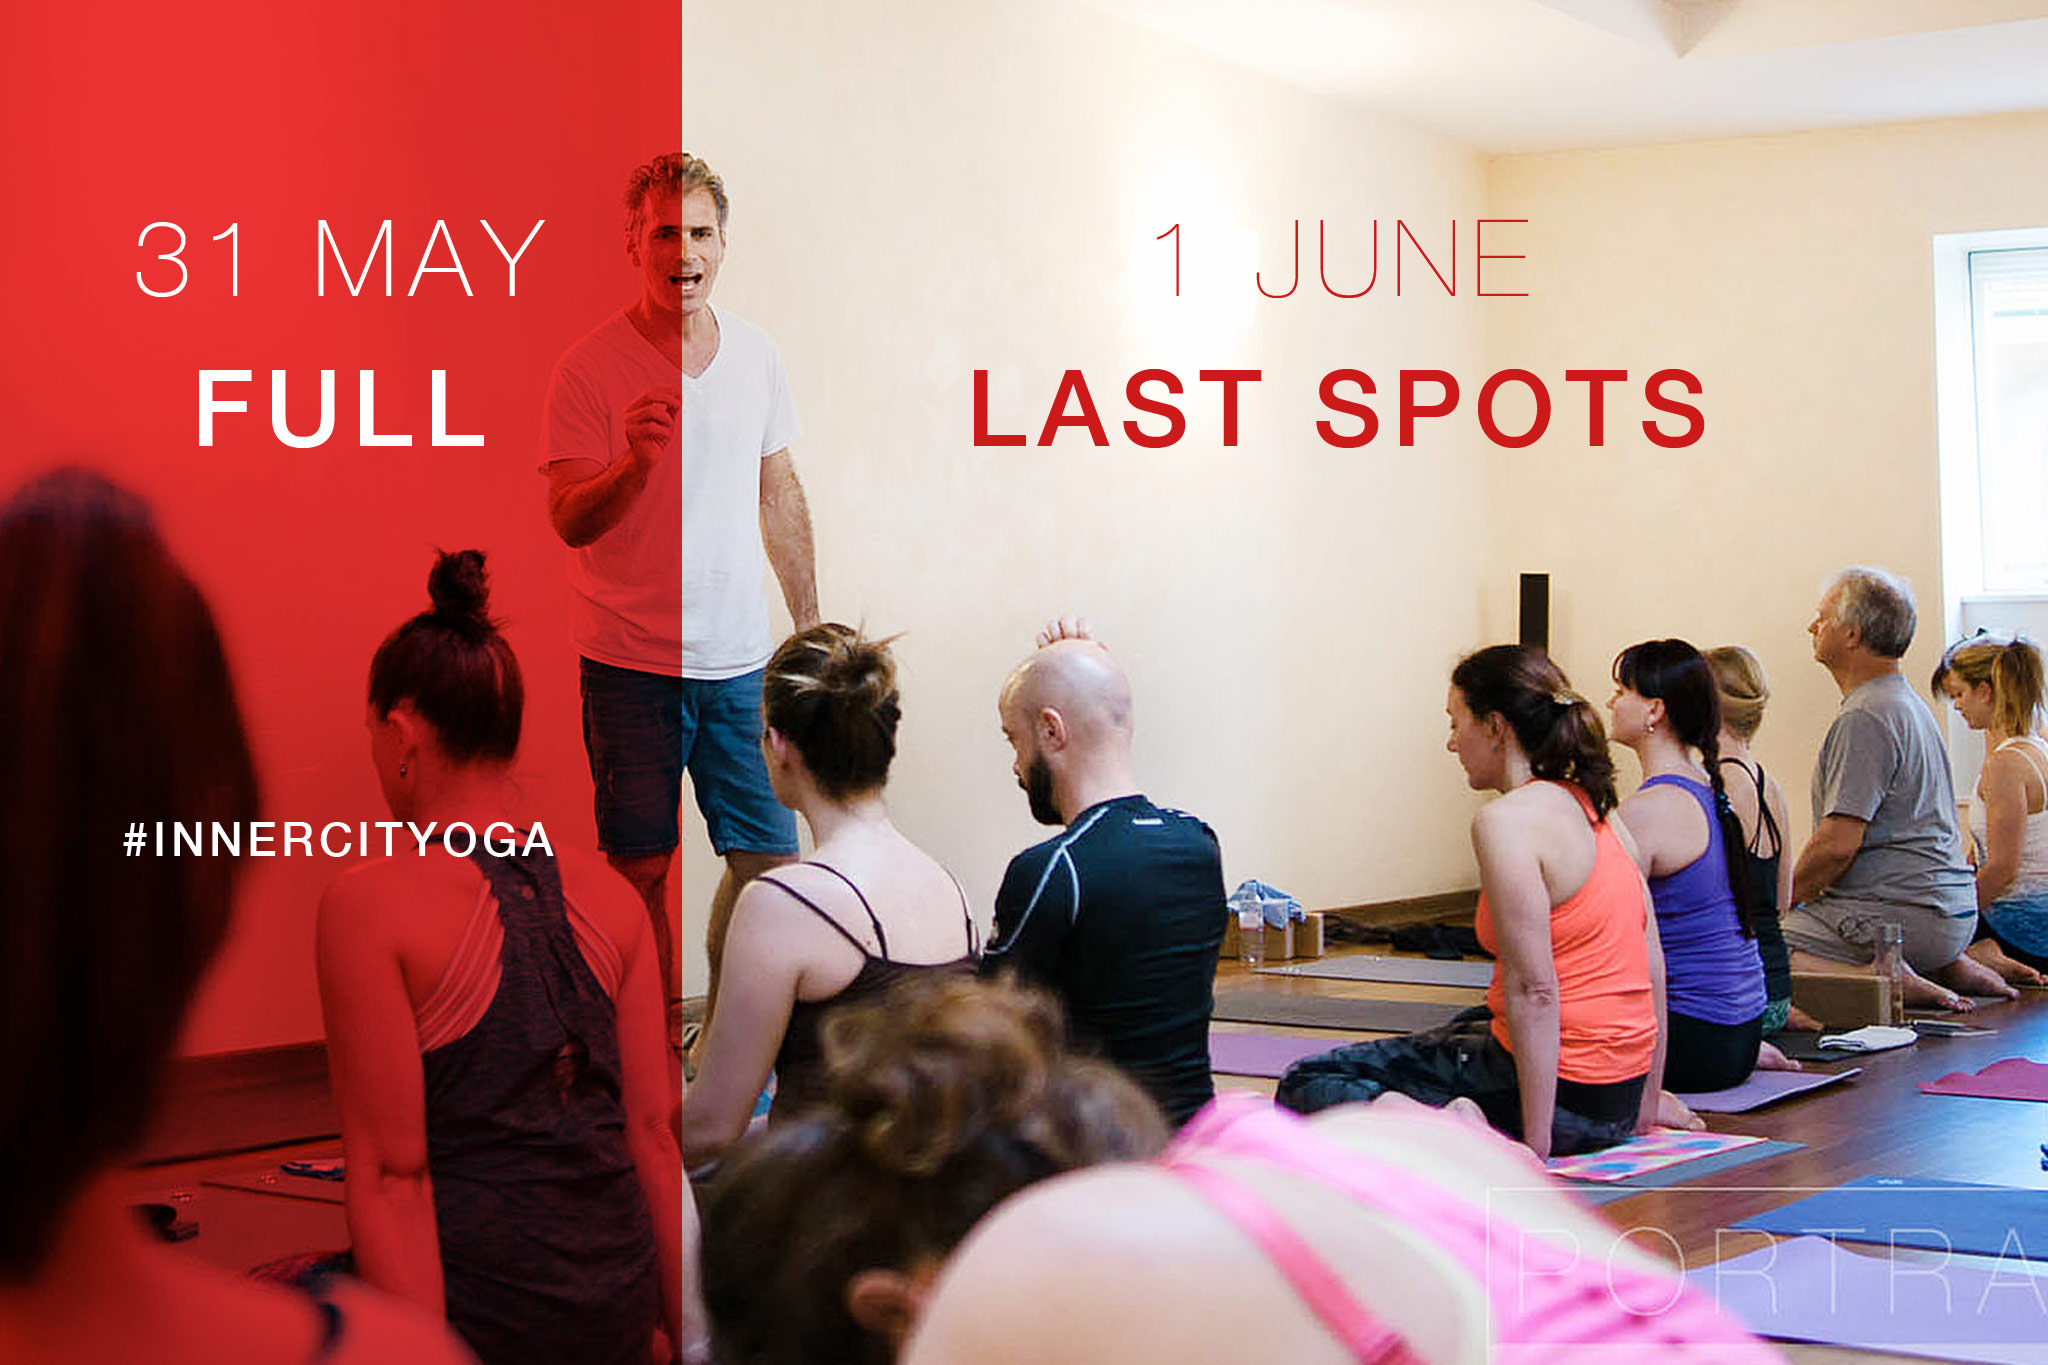 The Poweryoga Masterclass on 31 May is fully booked. Last spots available for the Poweryoga Masterclass 2 on Friday 1 June.